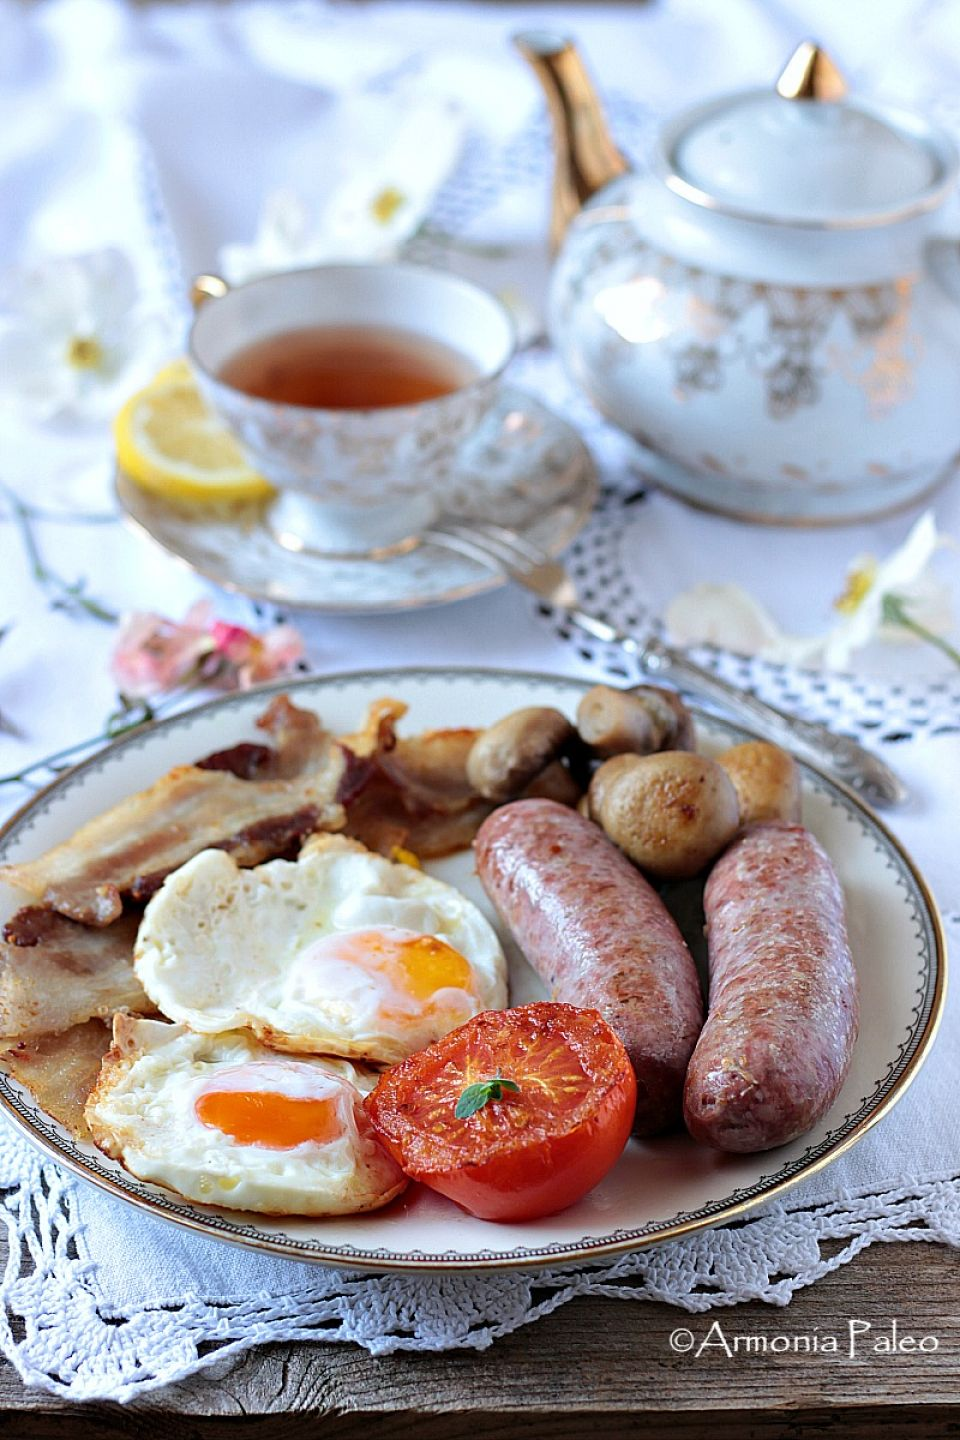 Full English Breakfast - Colazione Completa all'Inglese